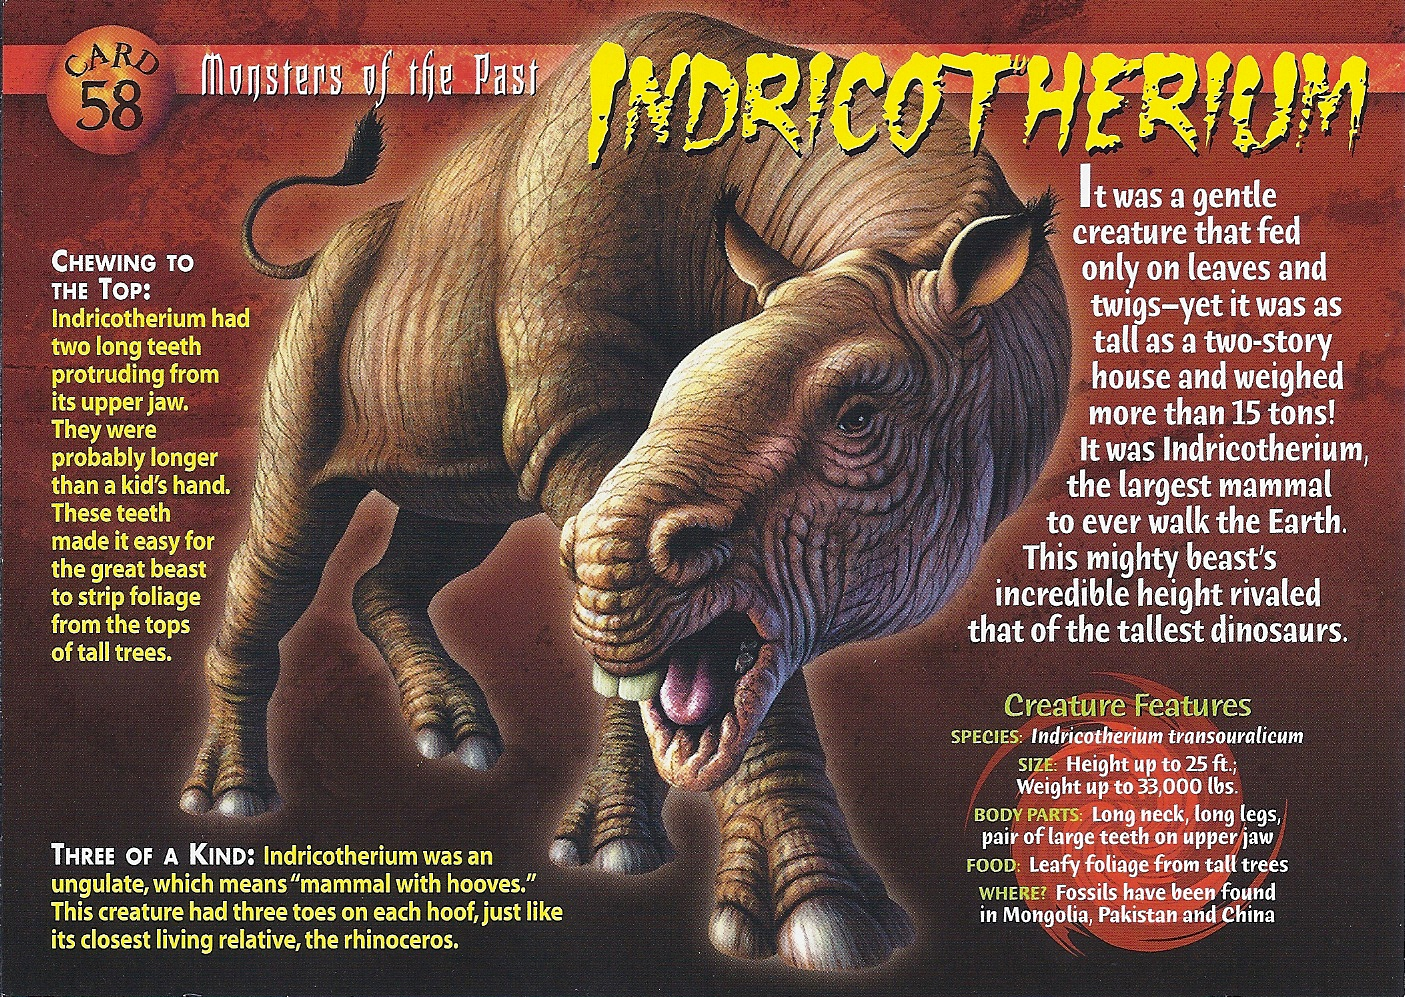 http://vignette3.wikia.nocookie.net/wierdnwildcreatures/images/7/7e/Indricotherium_front.jpg/revision/latest?cb=20130820035943